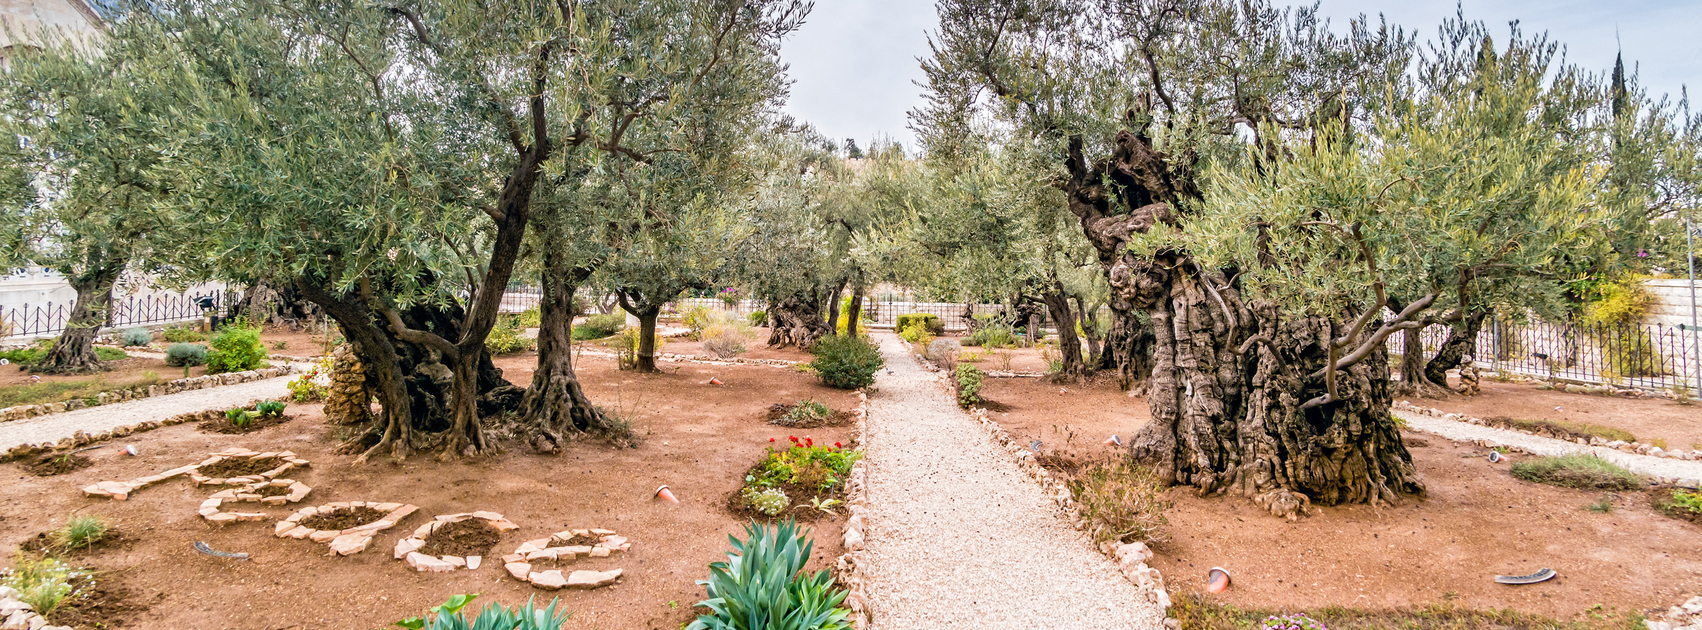 The ancient olive trees in the garden of gethsemane for Age olive trees garden gethsemane